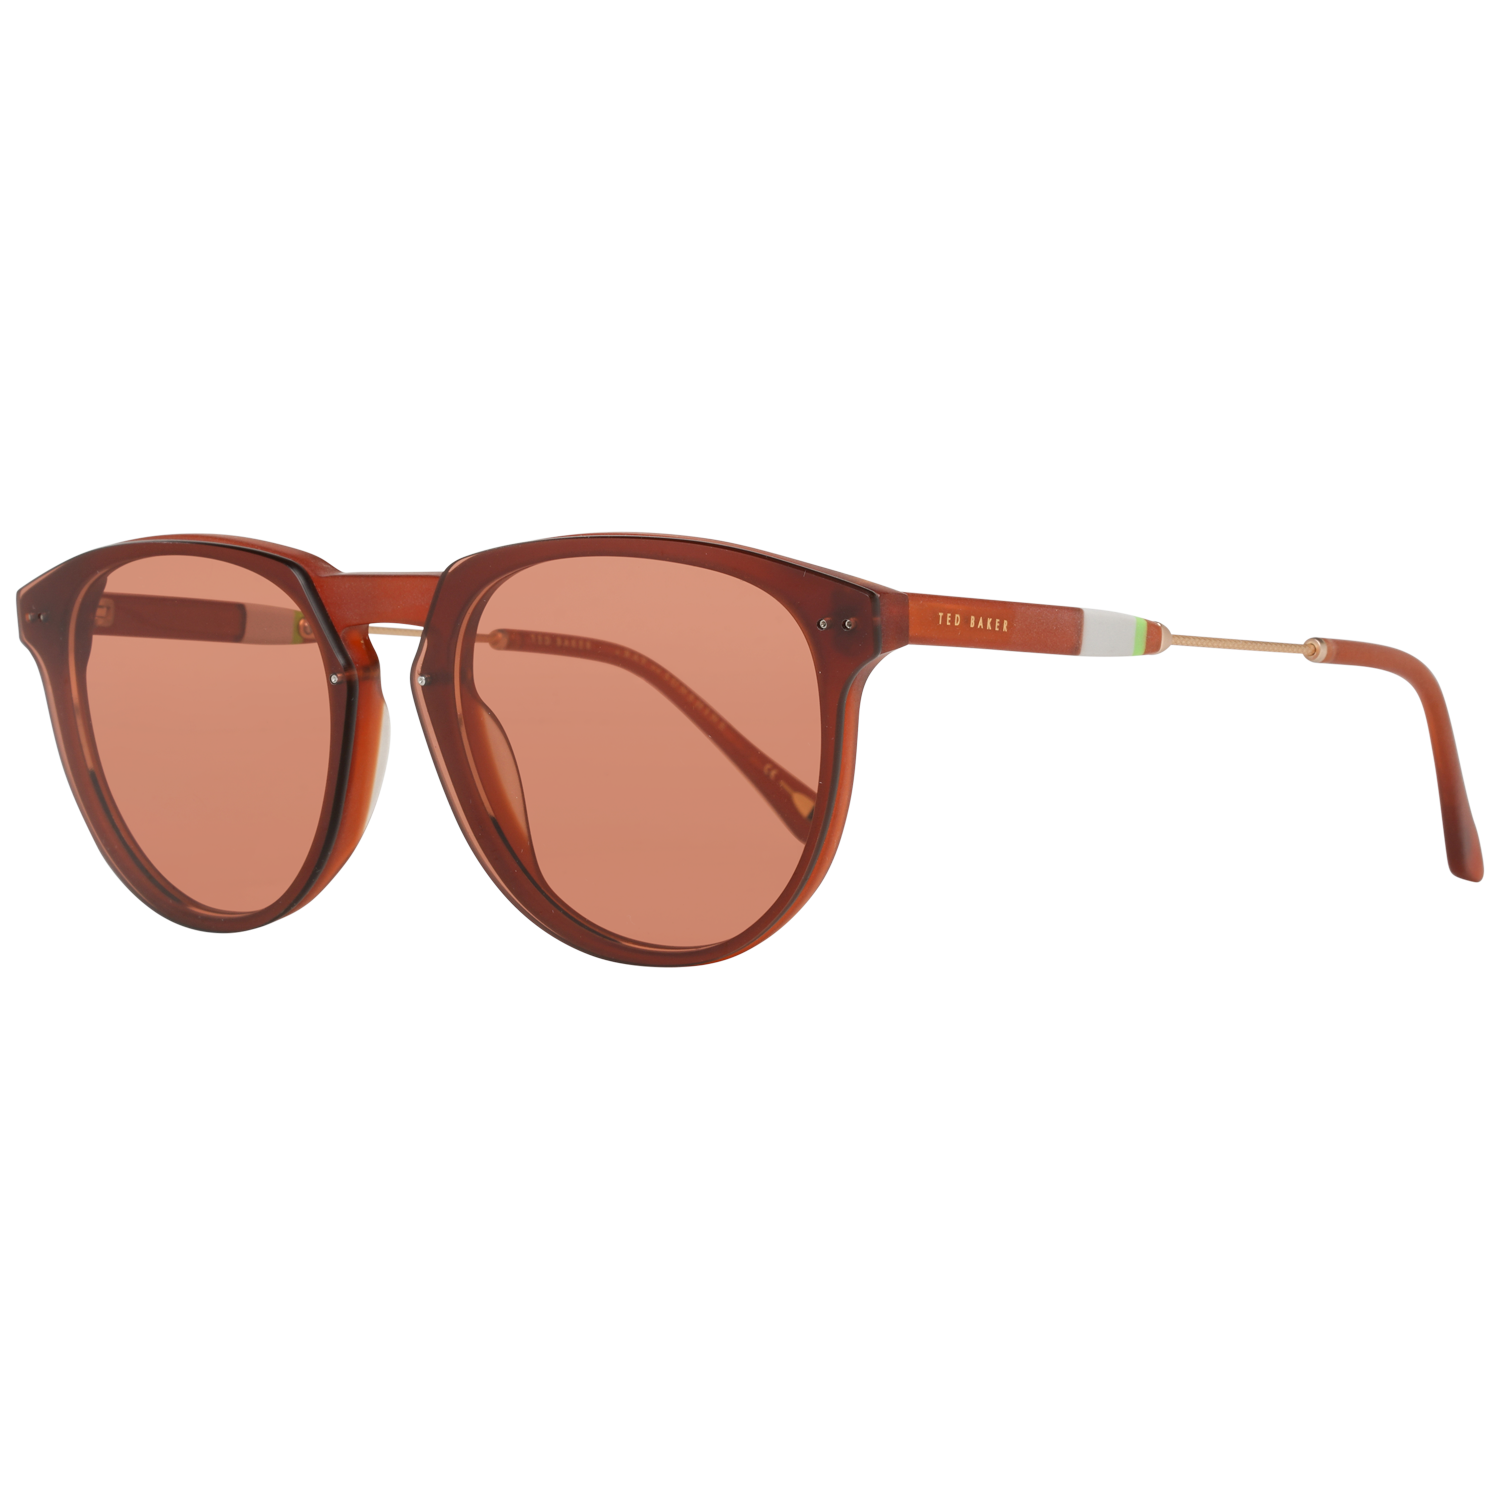 Ted Baker Sunglasses TB1574 305 65 Red